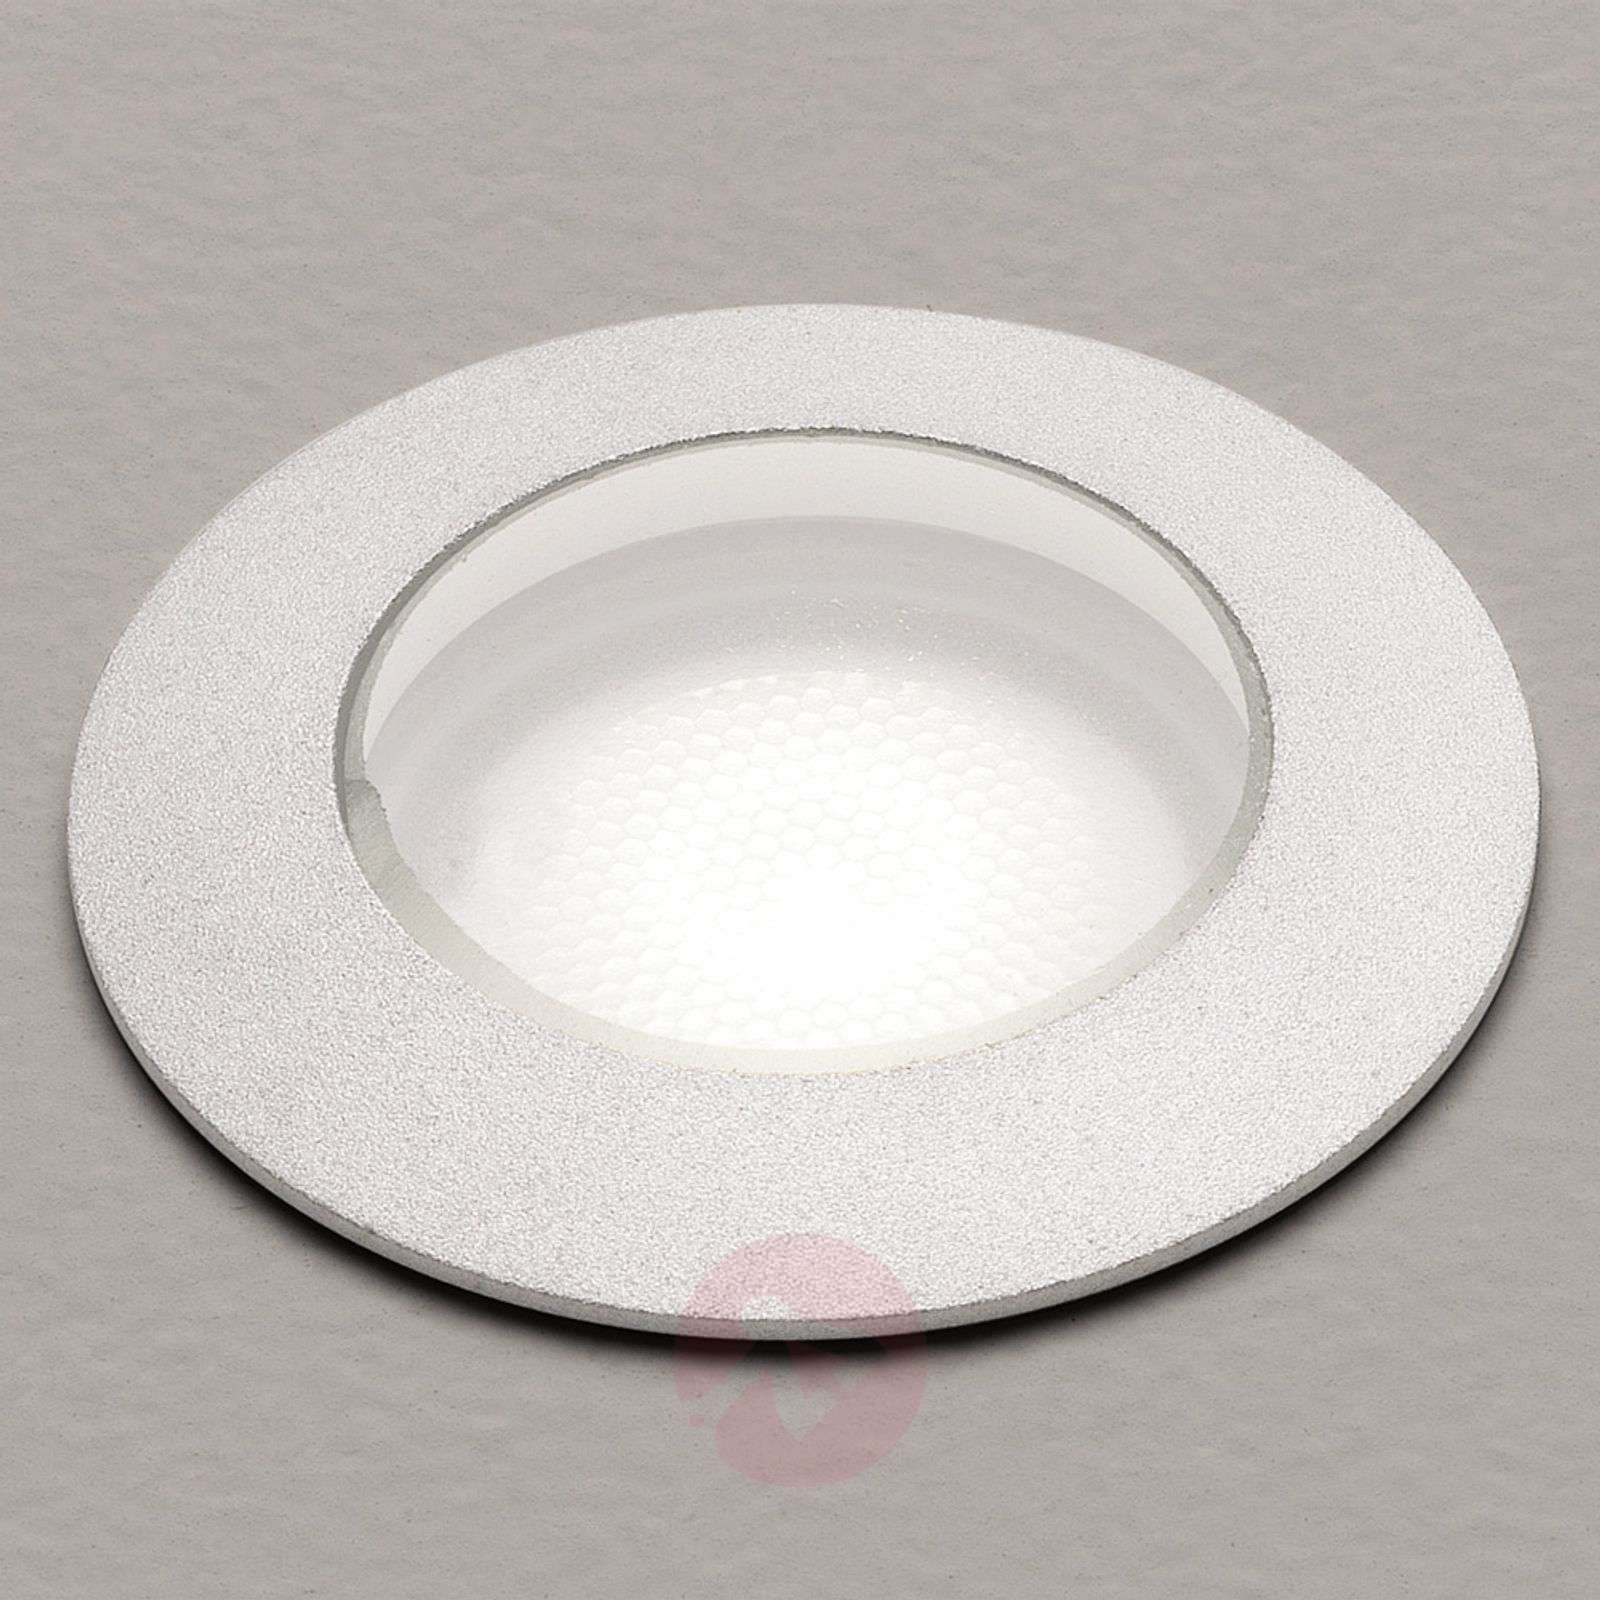 Downlight LED Terra 42 IP67 per bagno-1020459-03